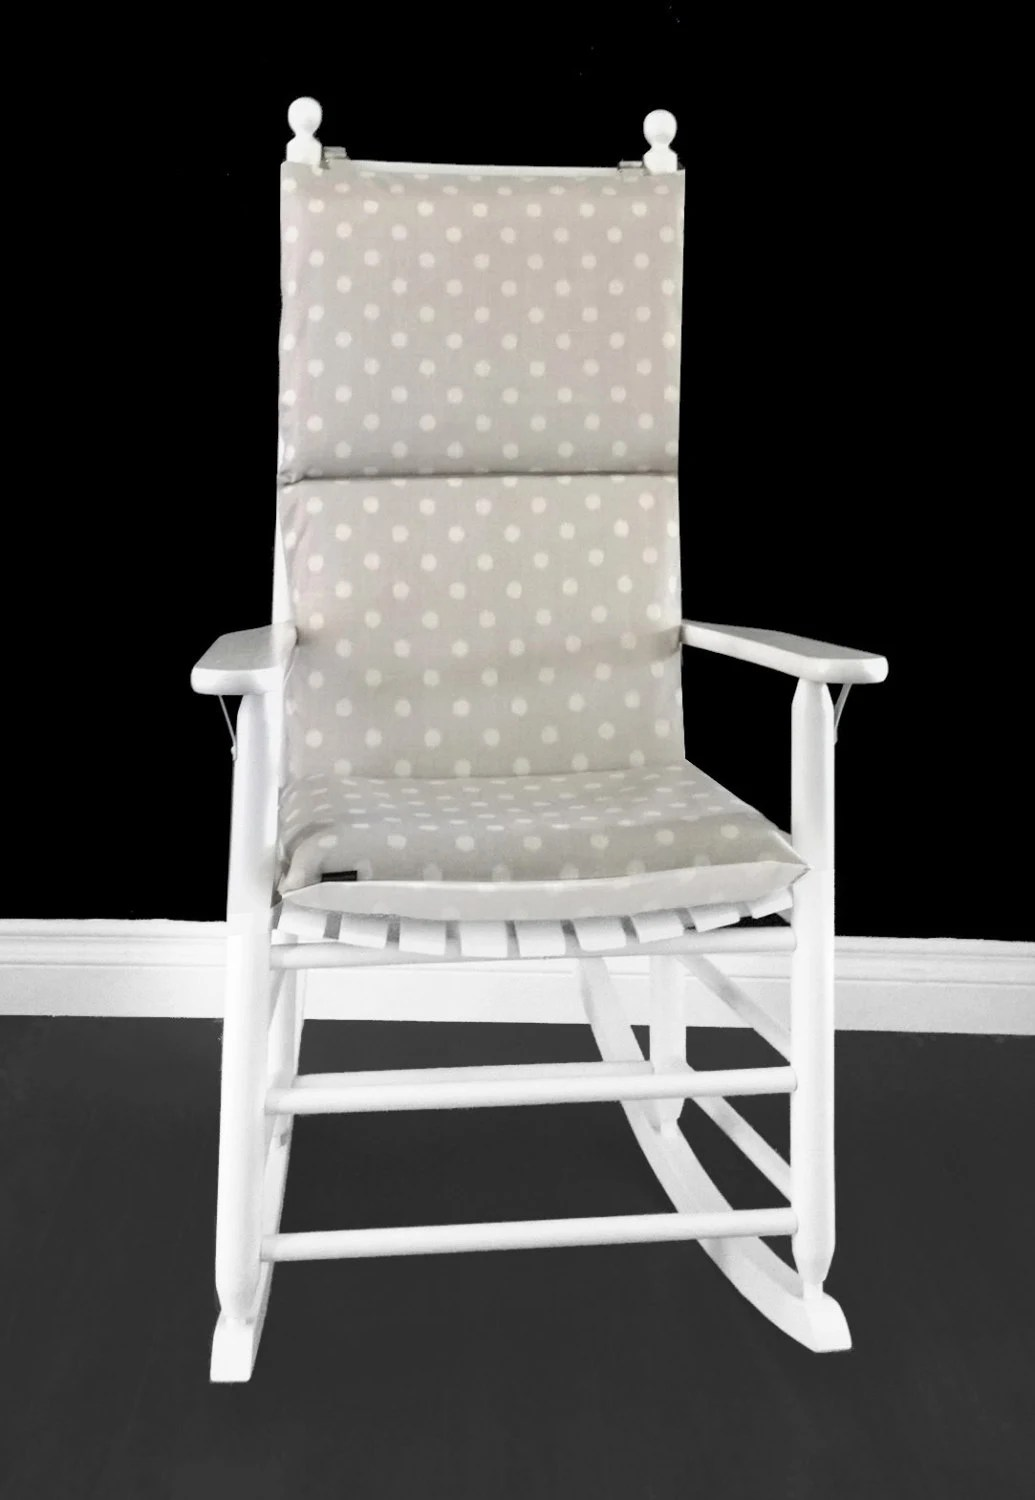 polka dot rocking chair cushions wheat back chairs ikat cushion custom size